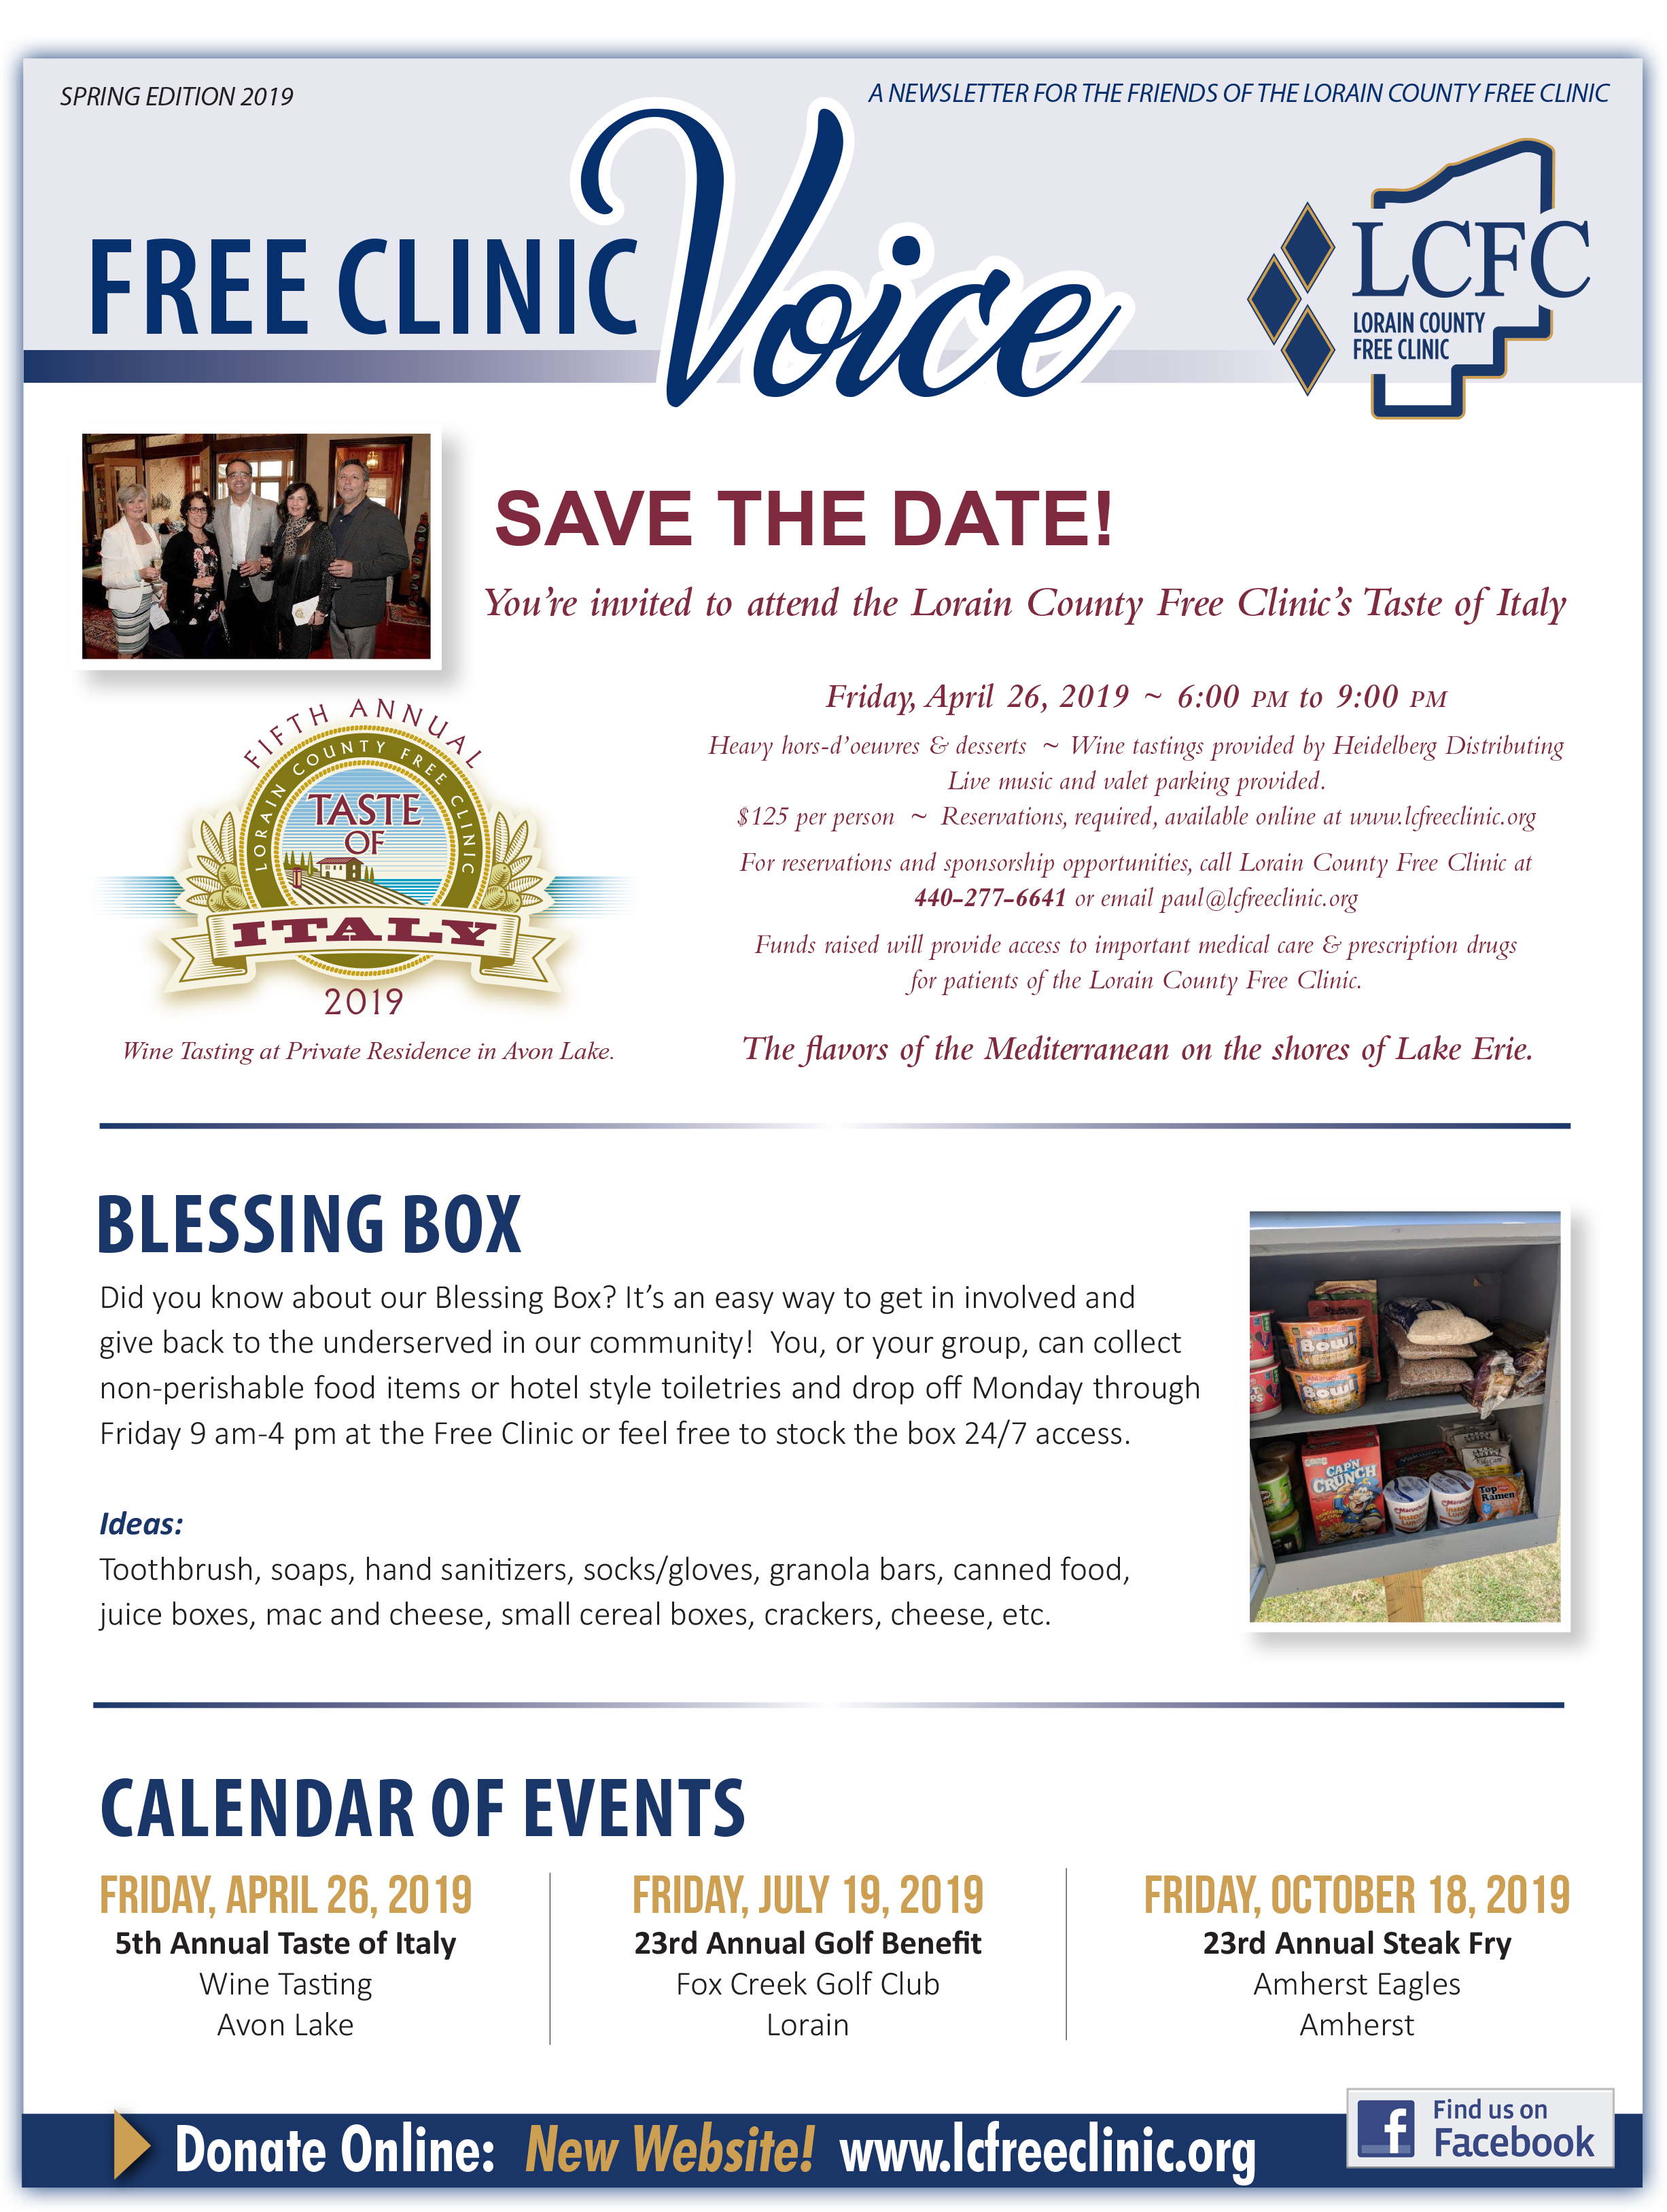 The Free Clinic Voice Newsletter: Spring 2019 - Lorain